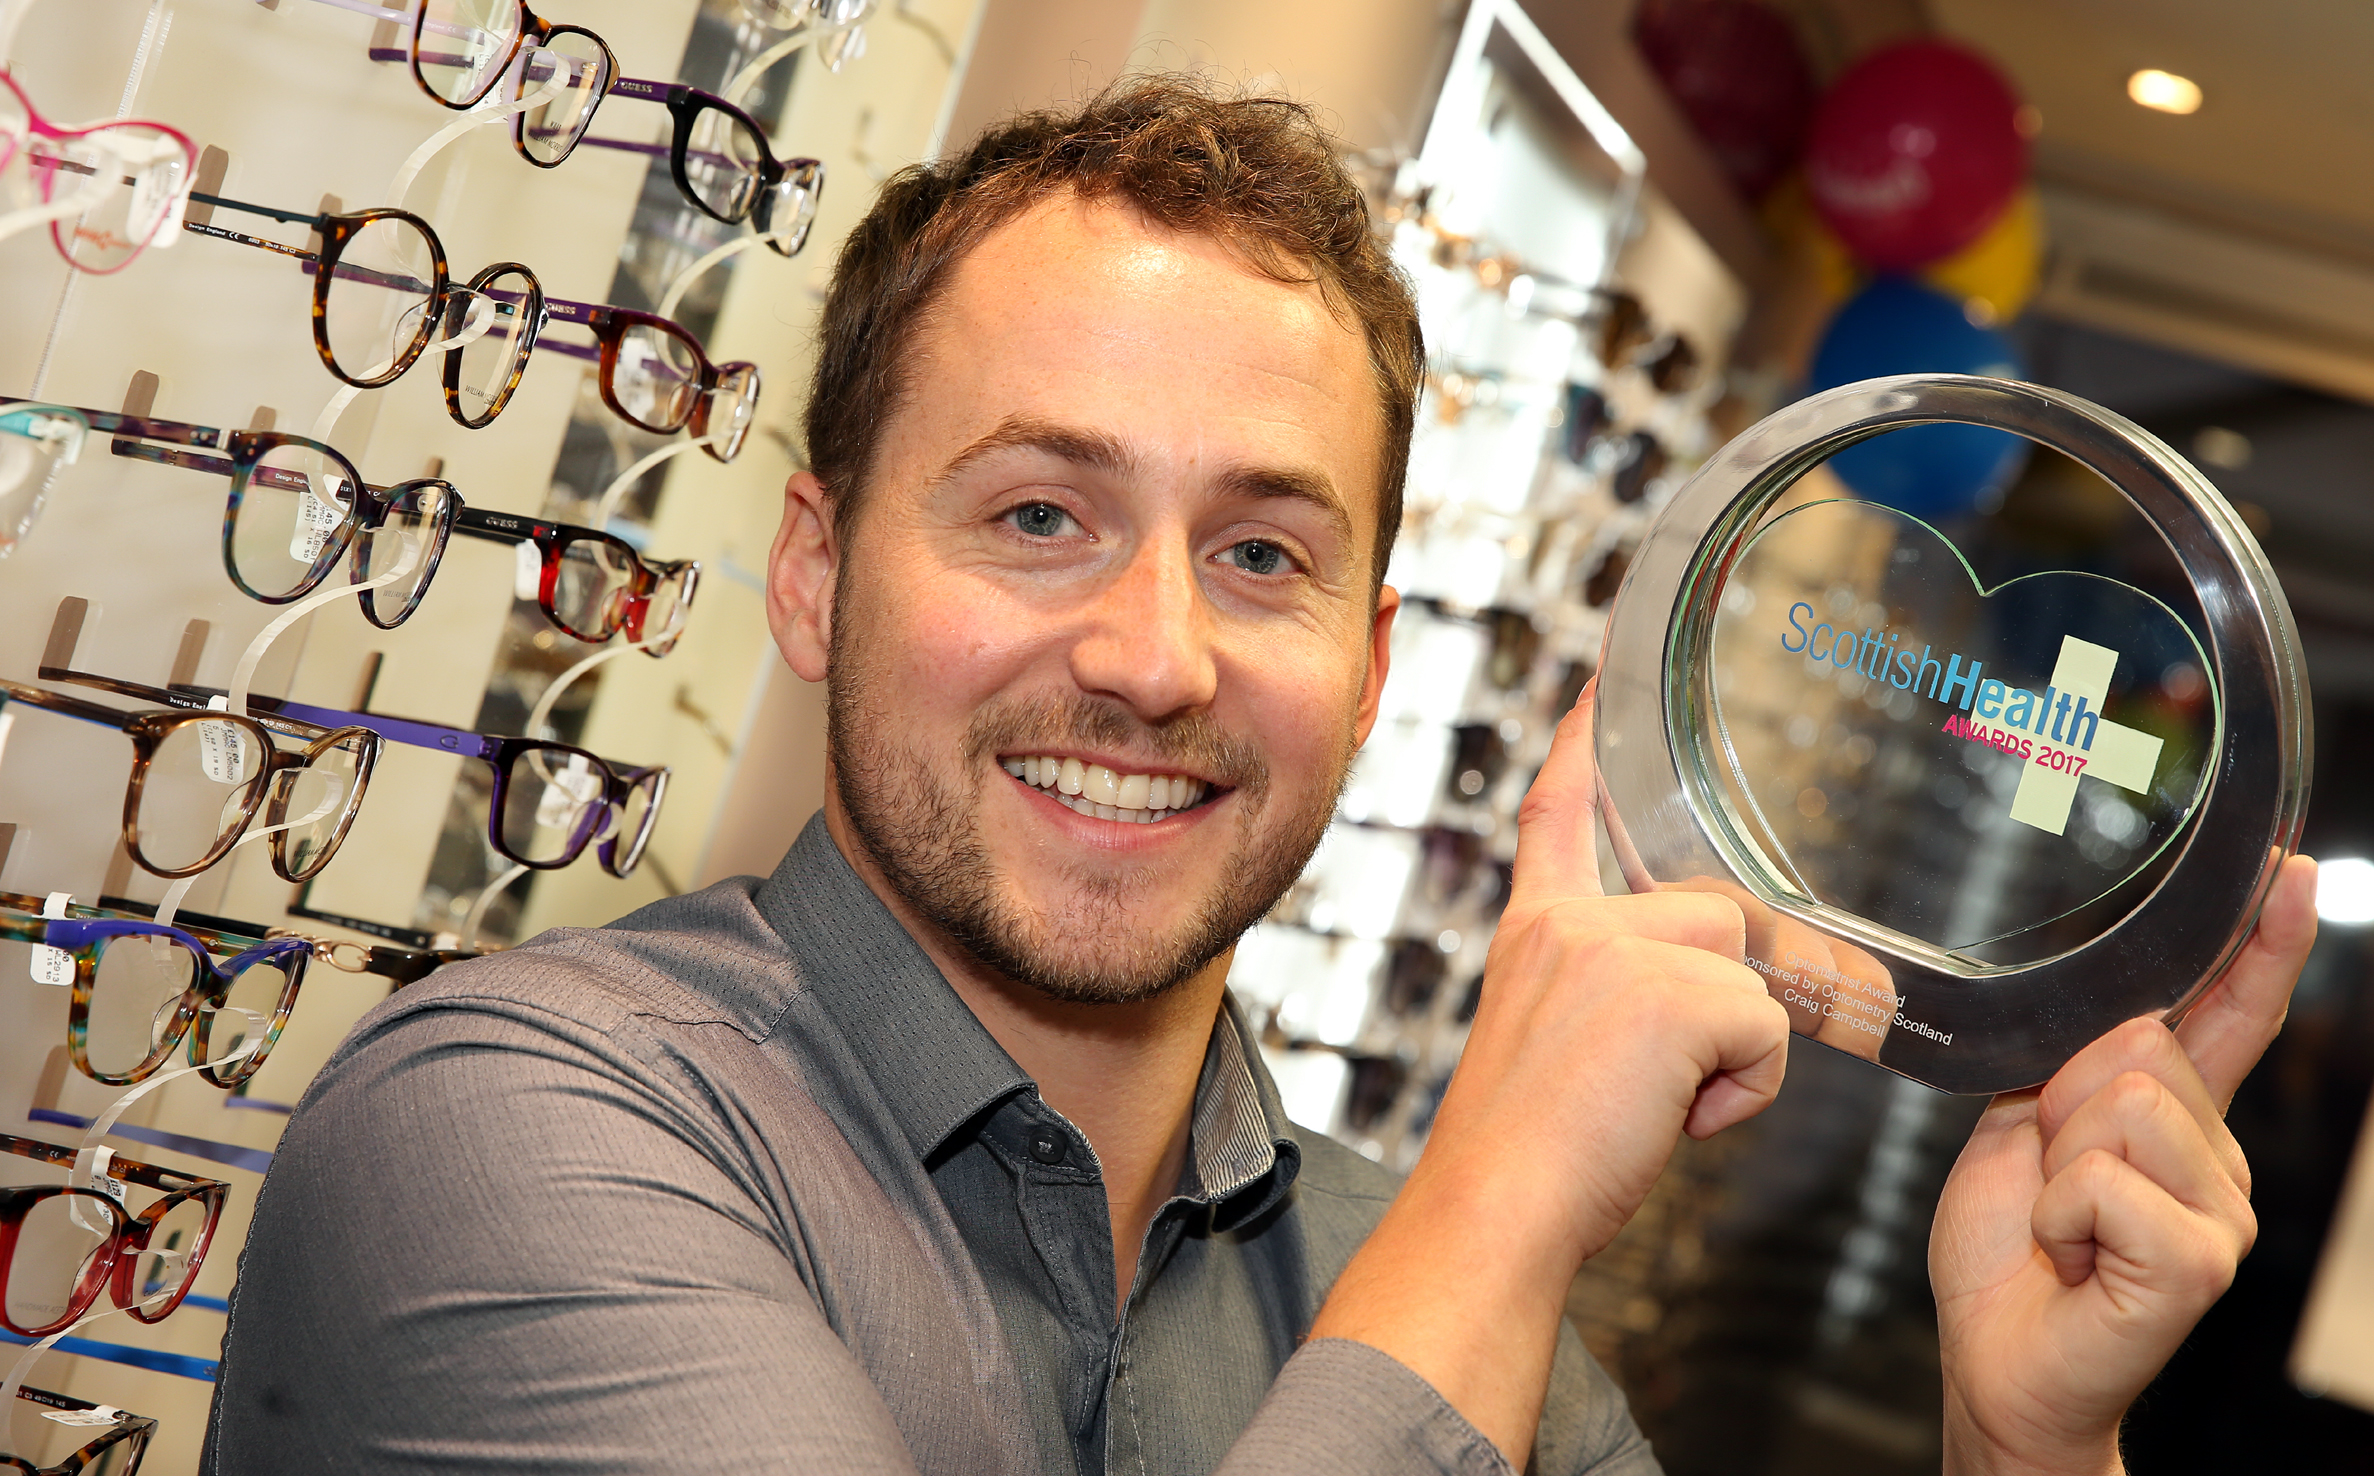 f92ab59053b9 Dornie optometrist honoured at Scottish Health Awards – West Highland Free  Press – www.whfp.com